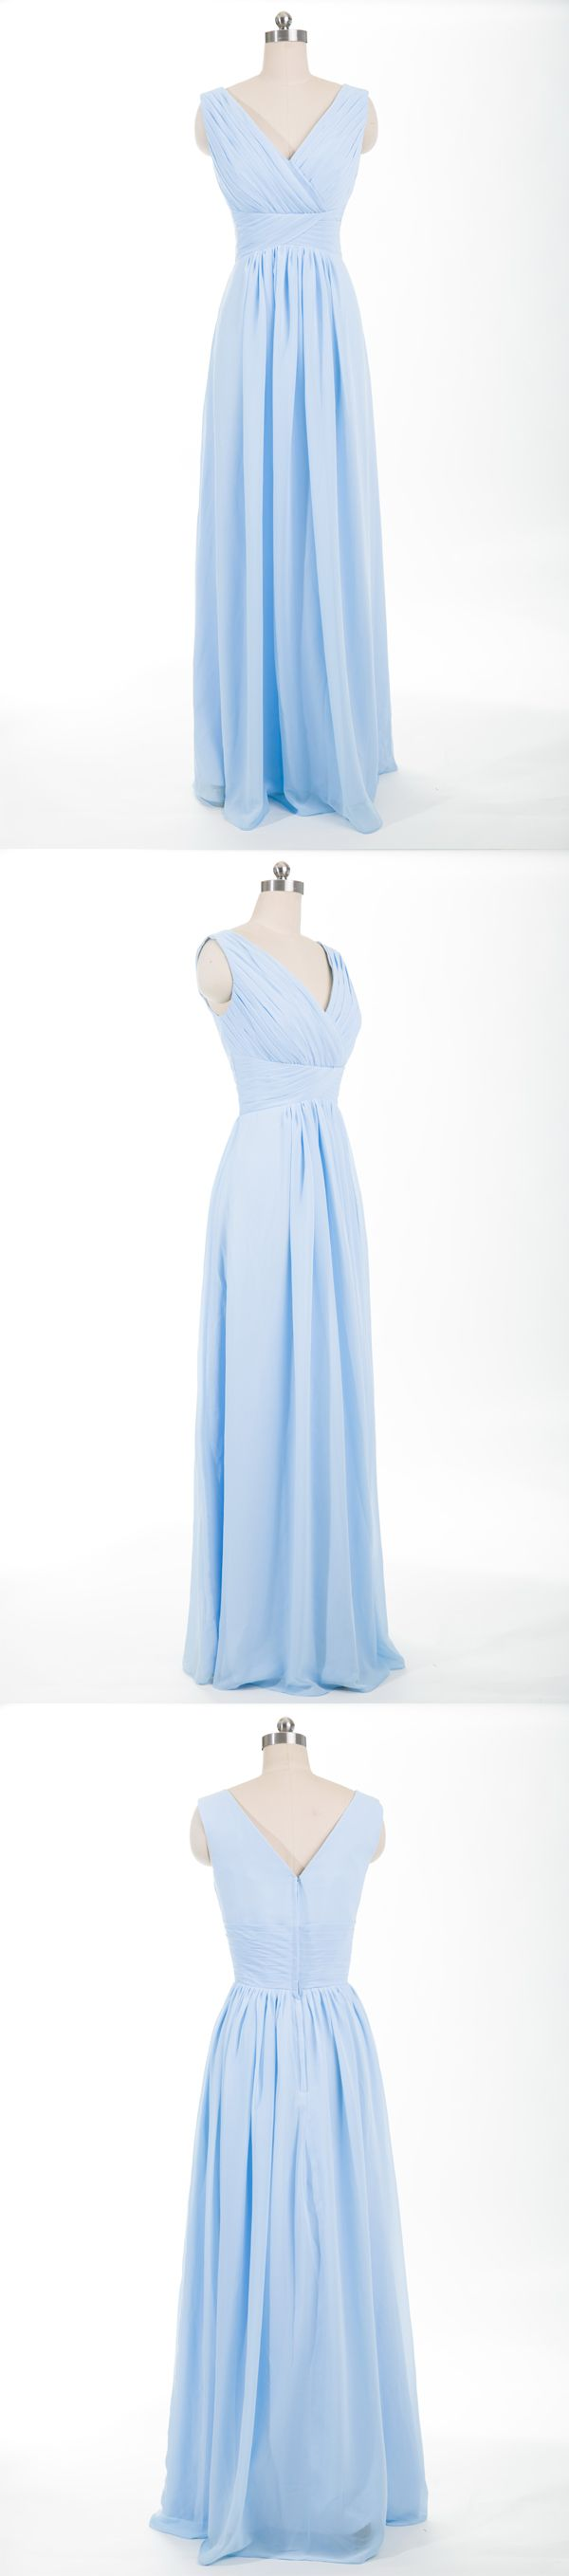 light sky blue long chiffon bridesmaid dress for spring summer wedding 2017